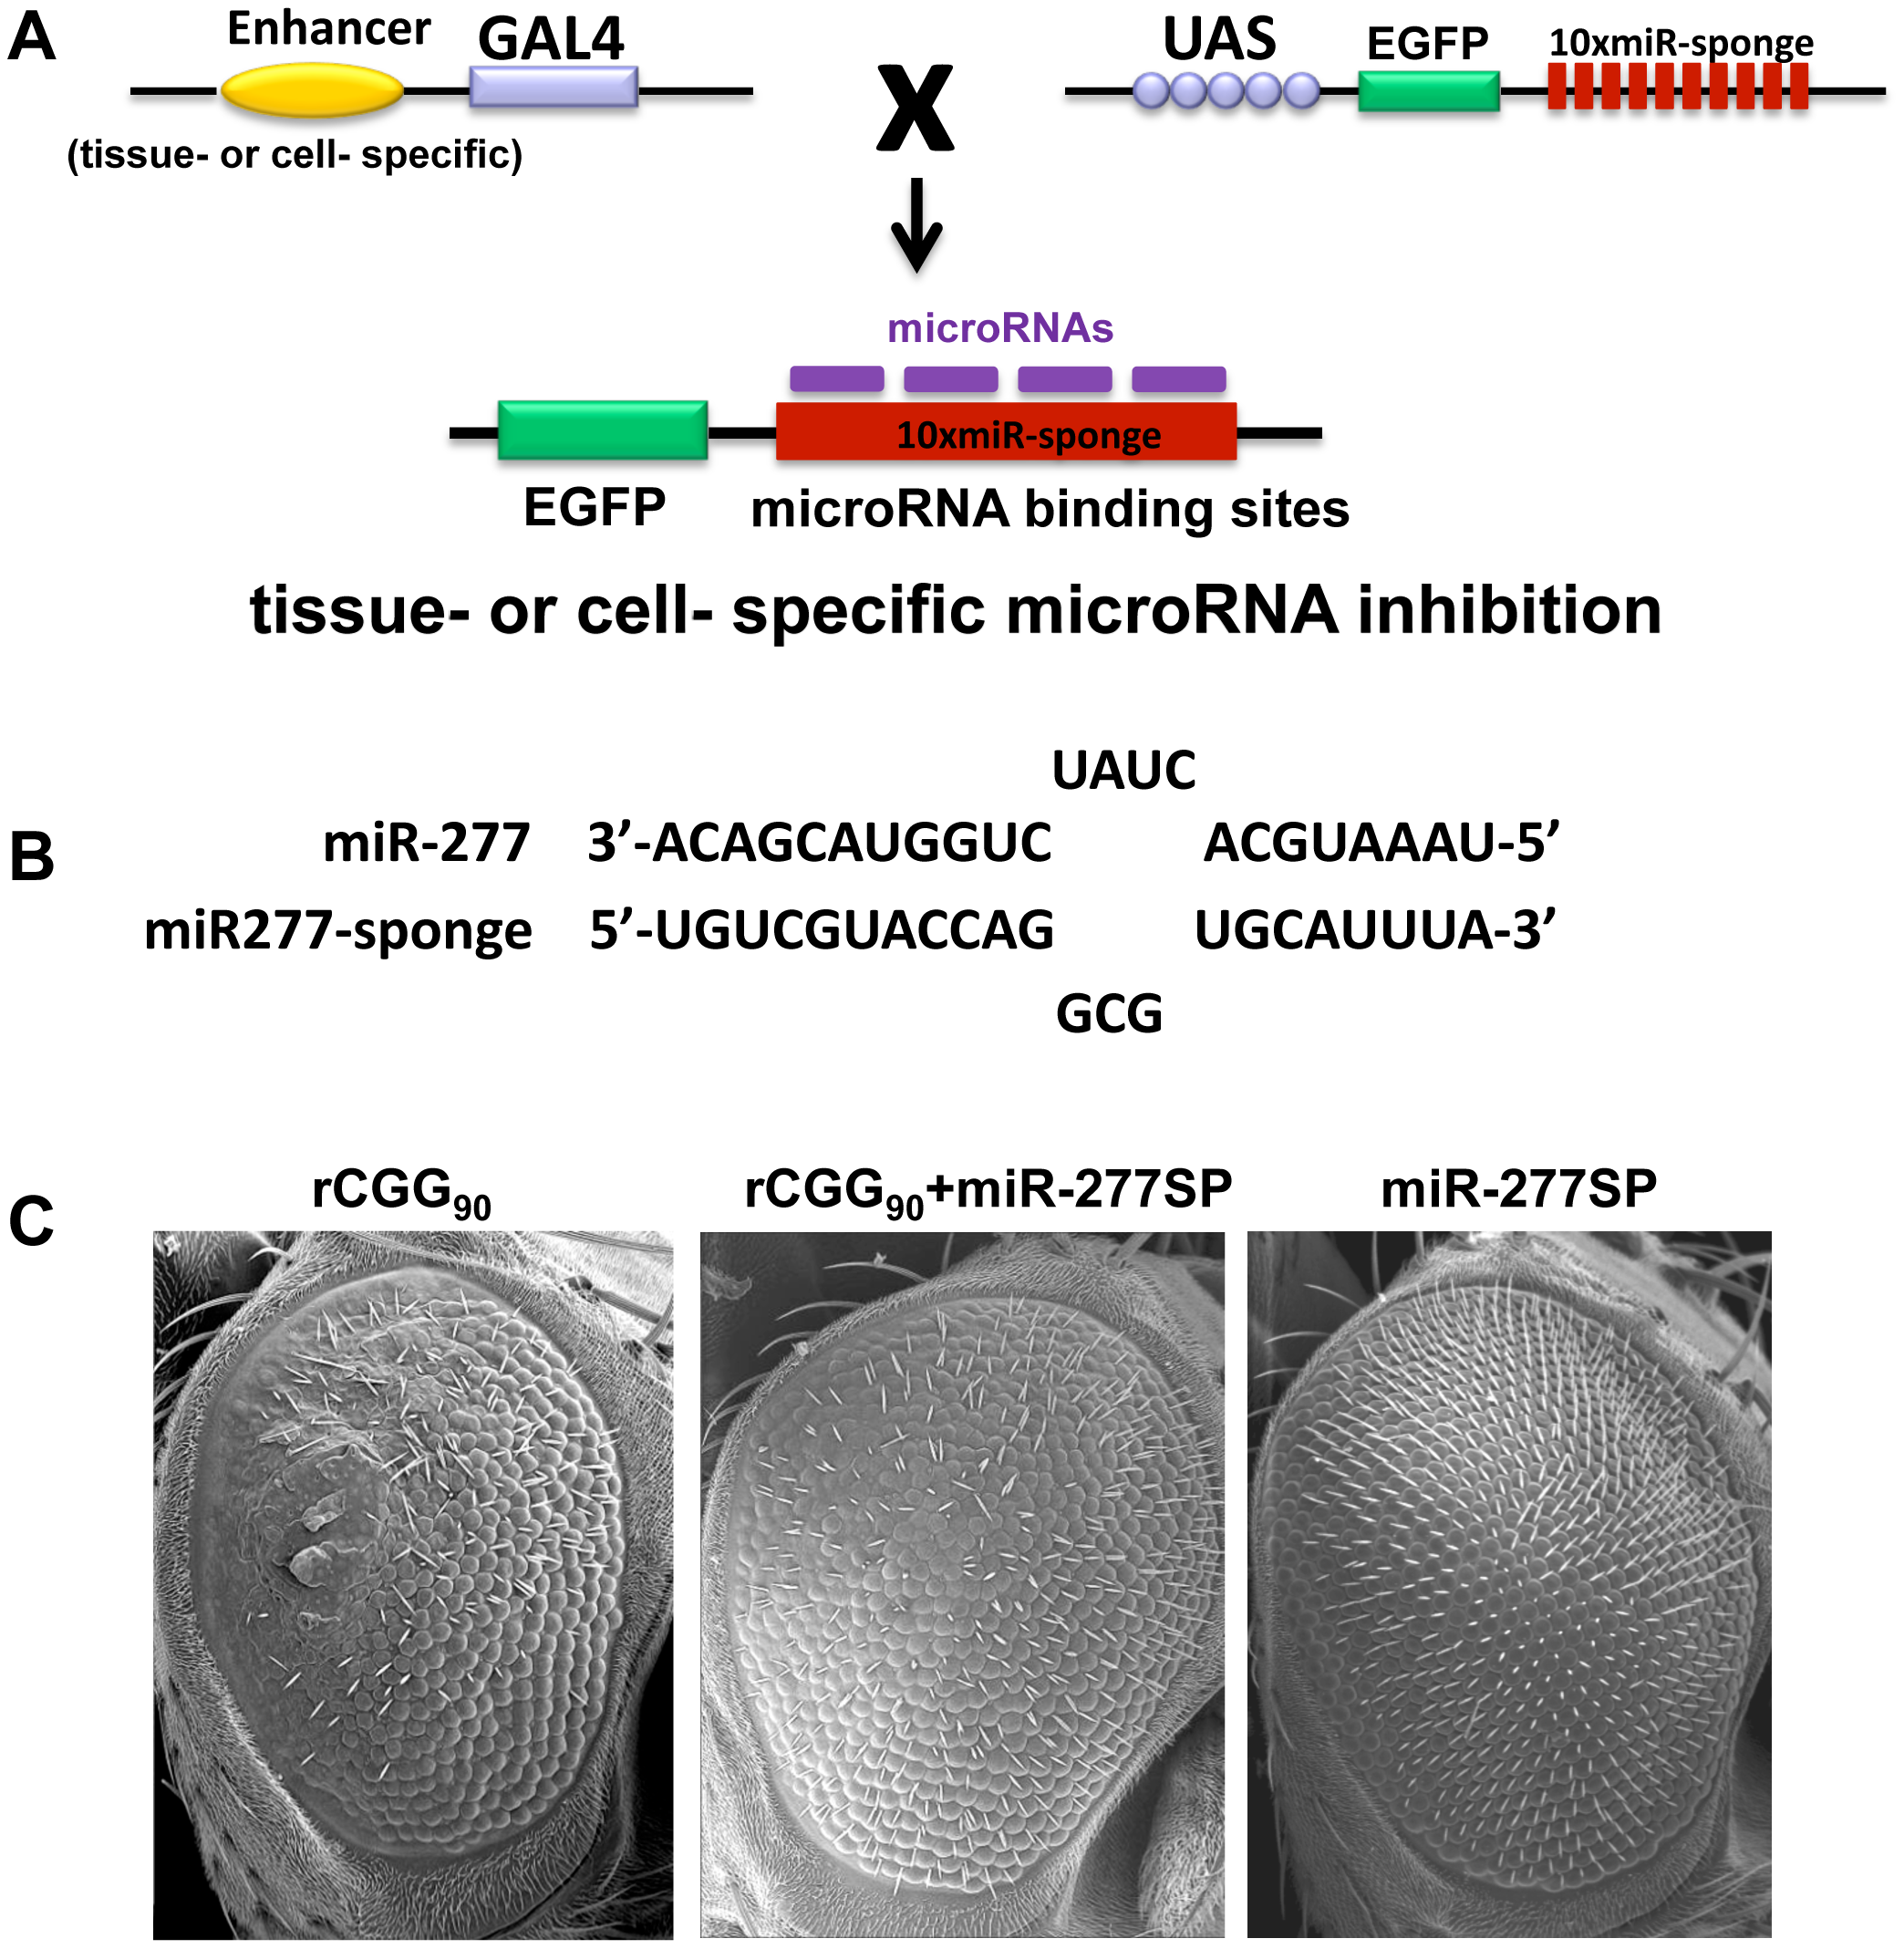 Blocking the activity of miR-277 suppresses rCGG-mediated neurodegeneration.